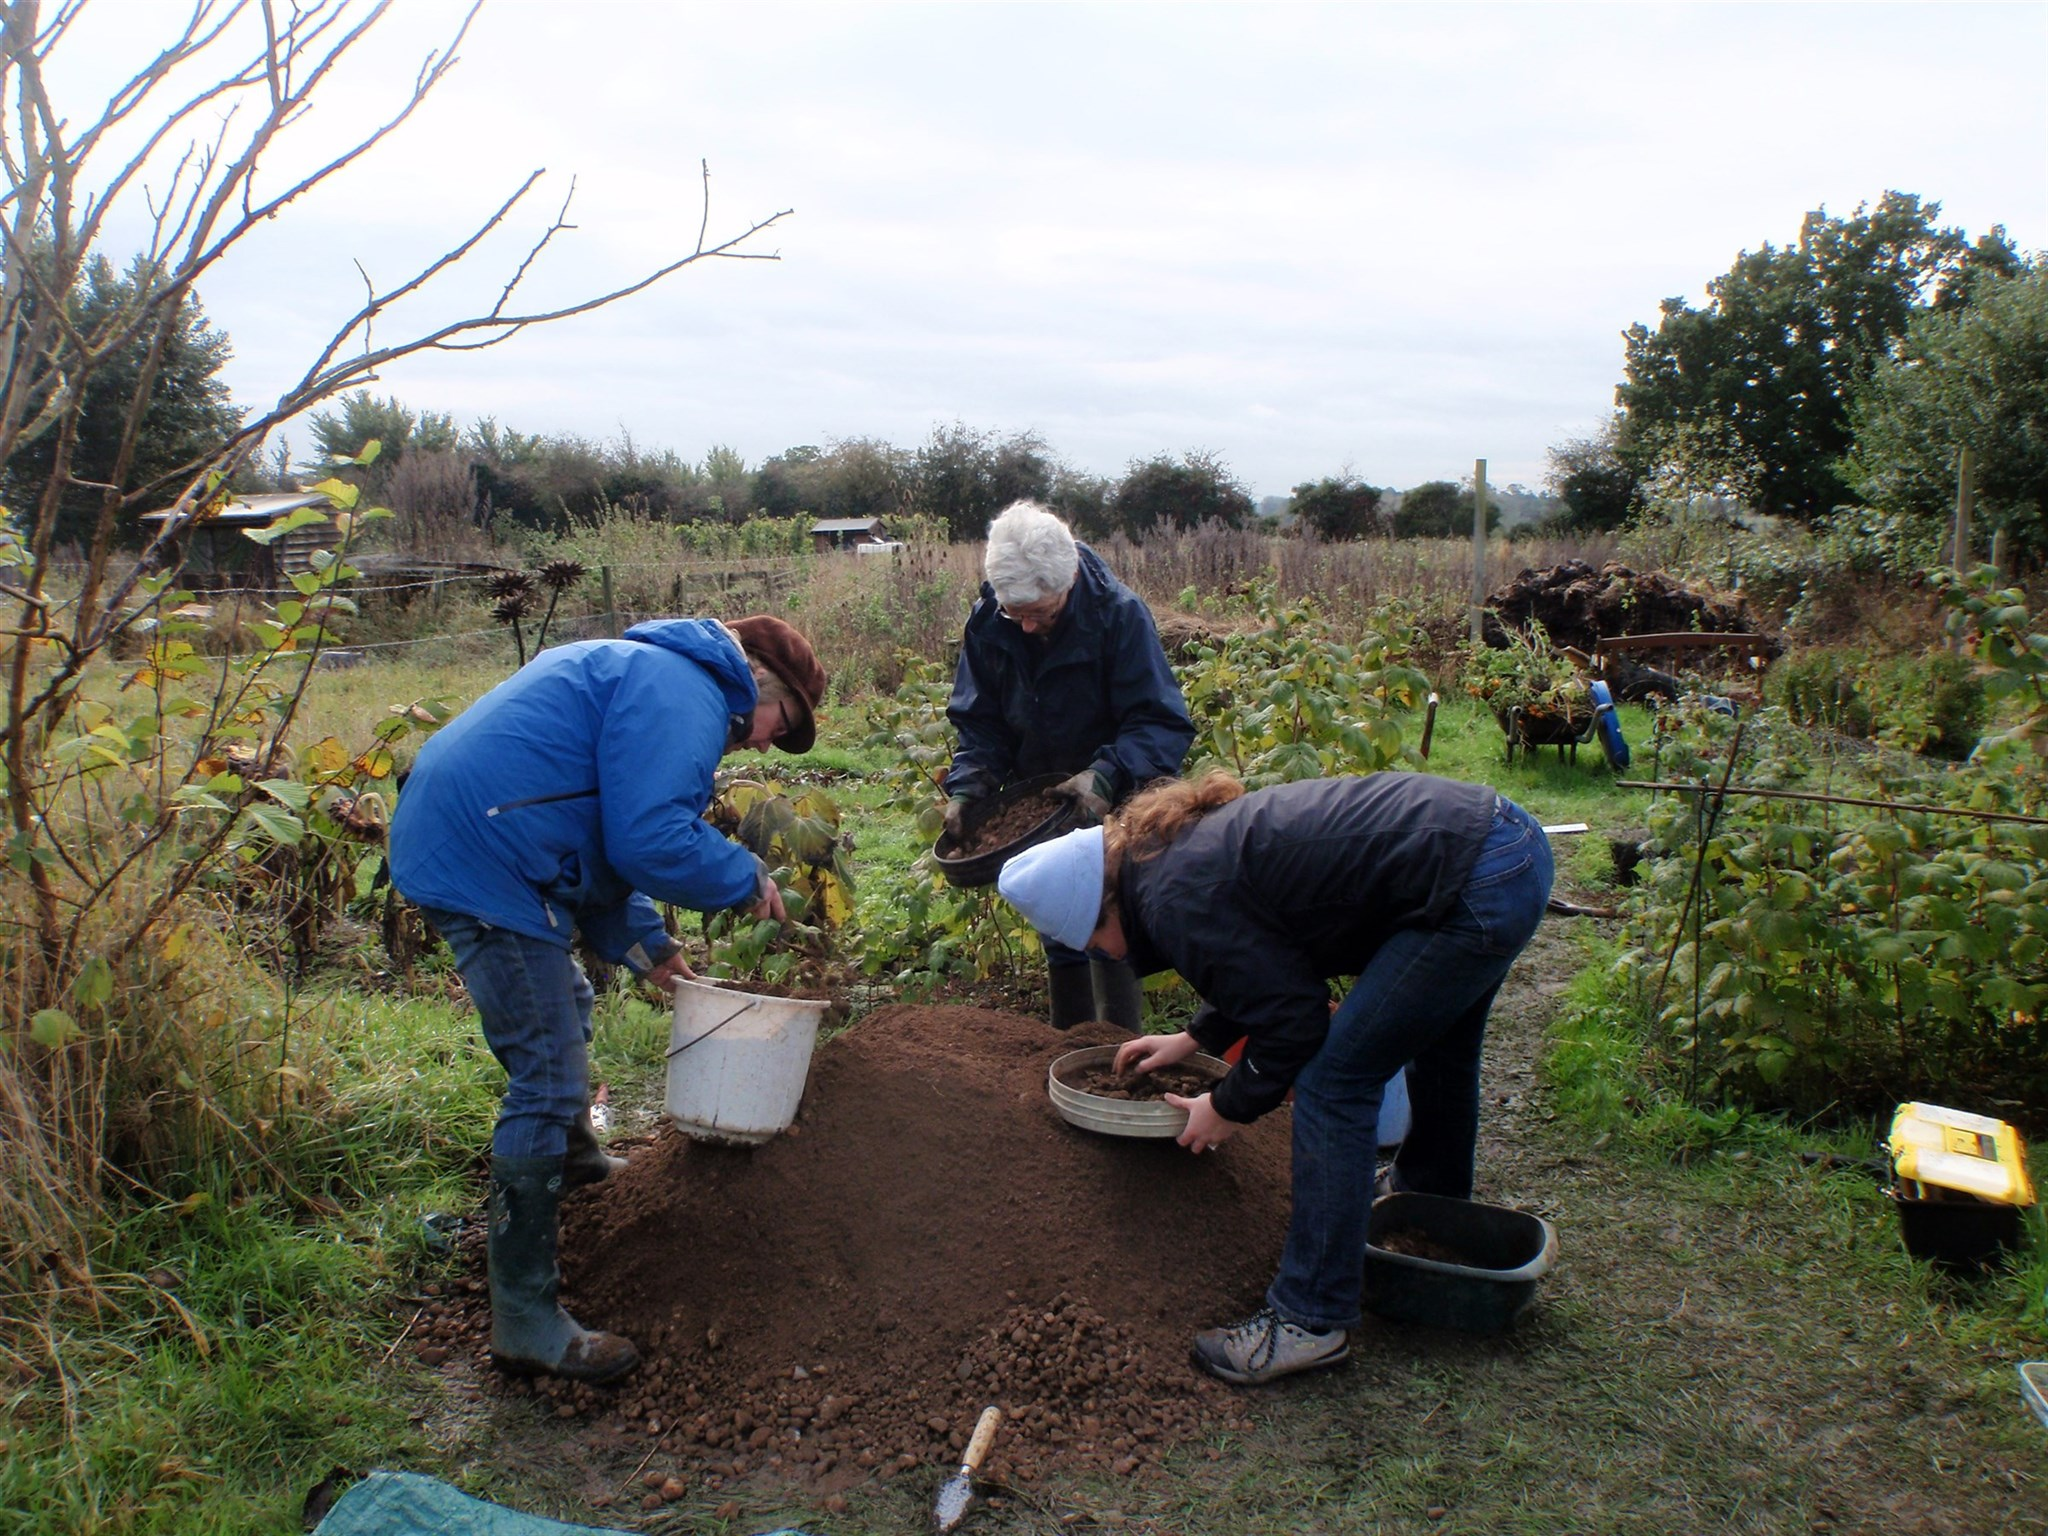 Volunteers digging a test pit at Stoke by Nayland